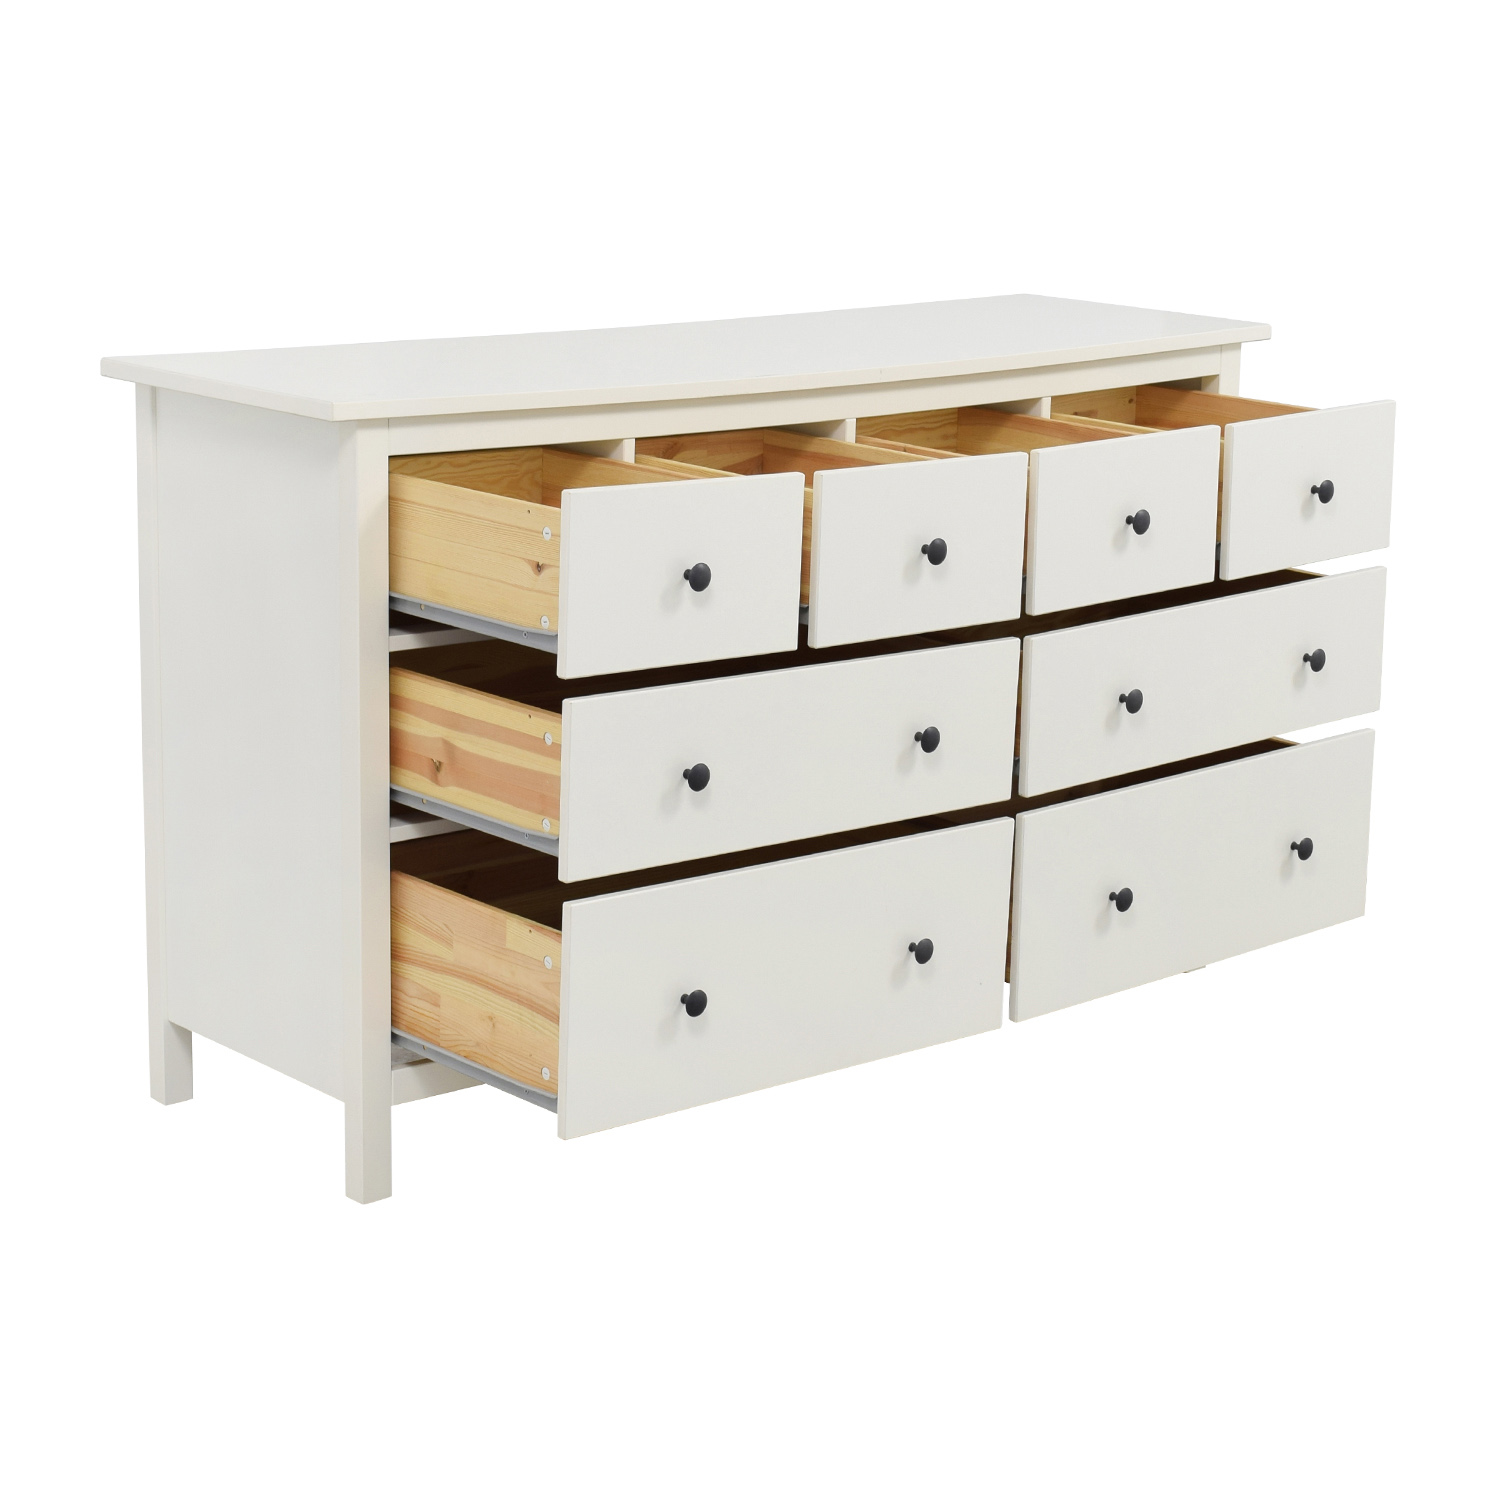 43 off ikea ikea hemnes eight drawer dresser storage